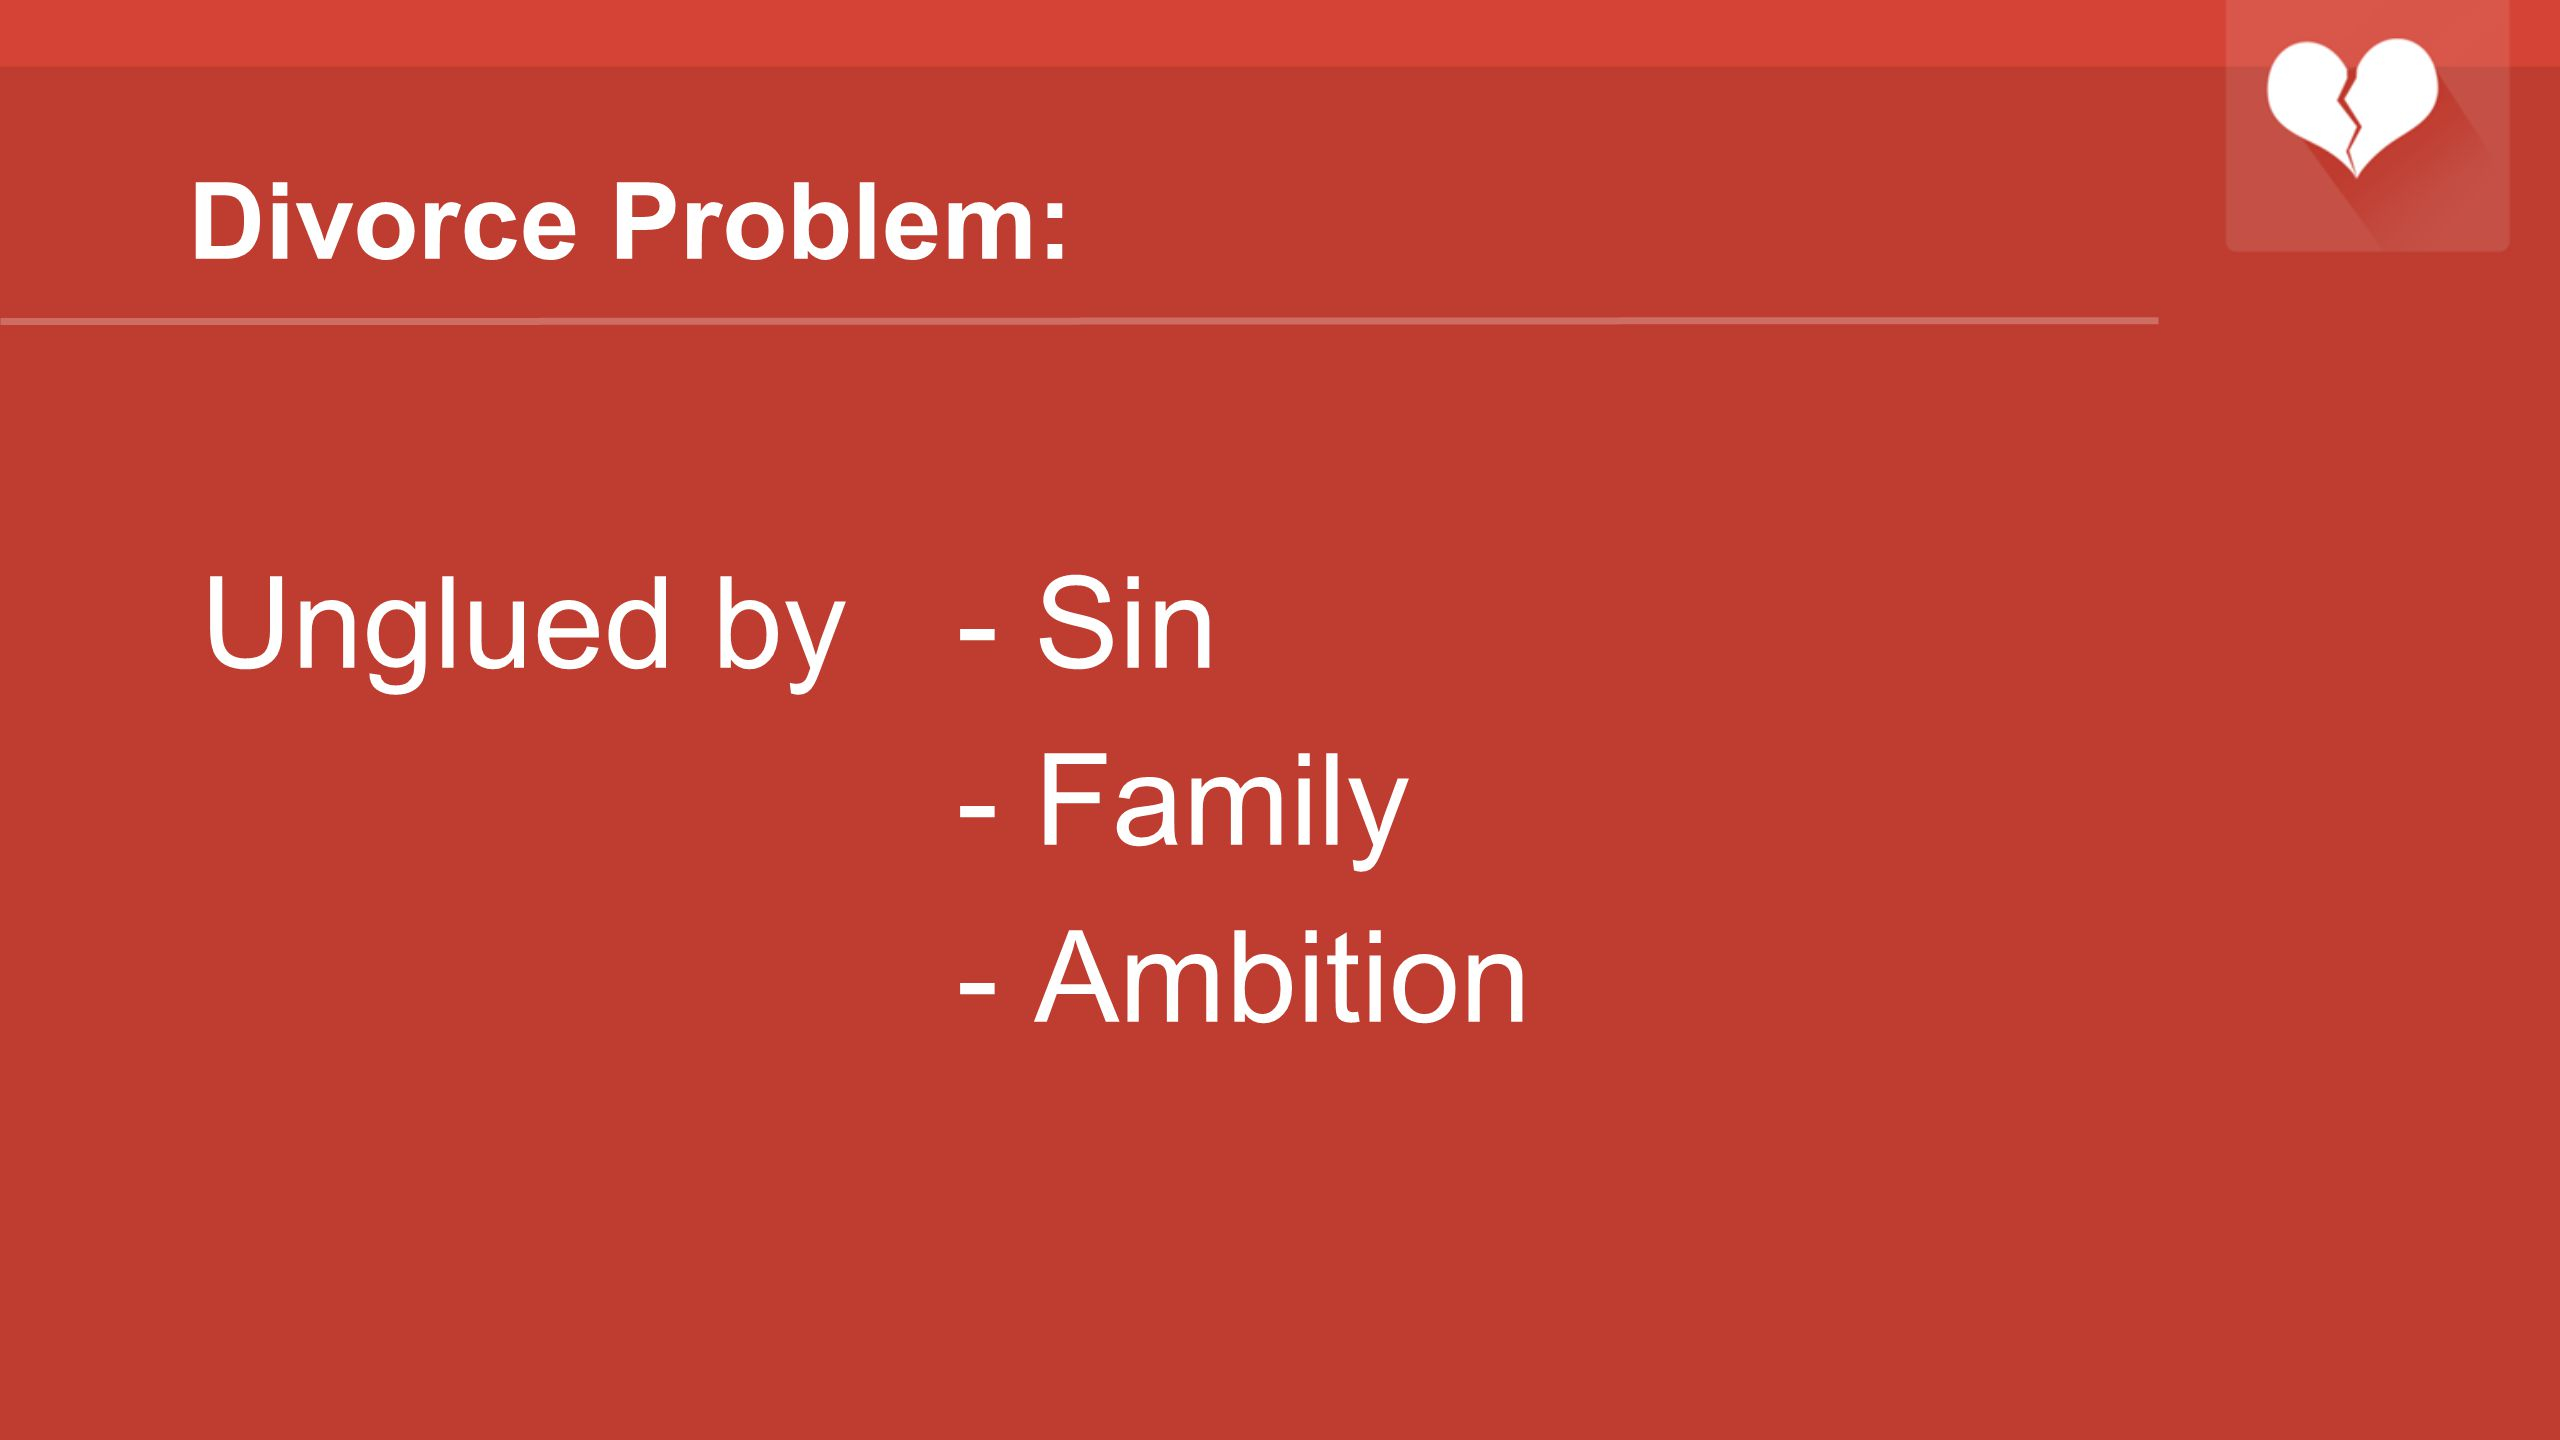 Divorce Problem: Unglued by - Sin - Family - Ambition